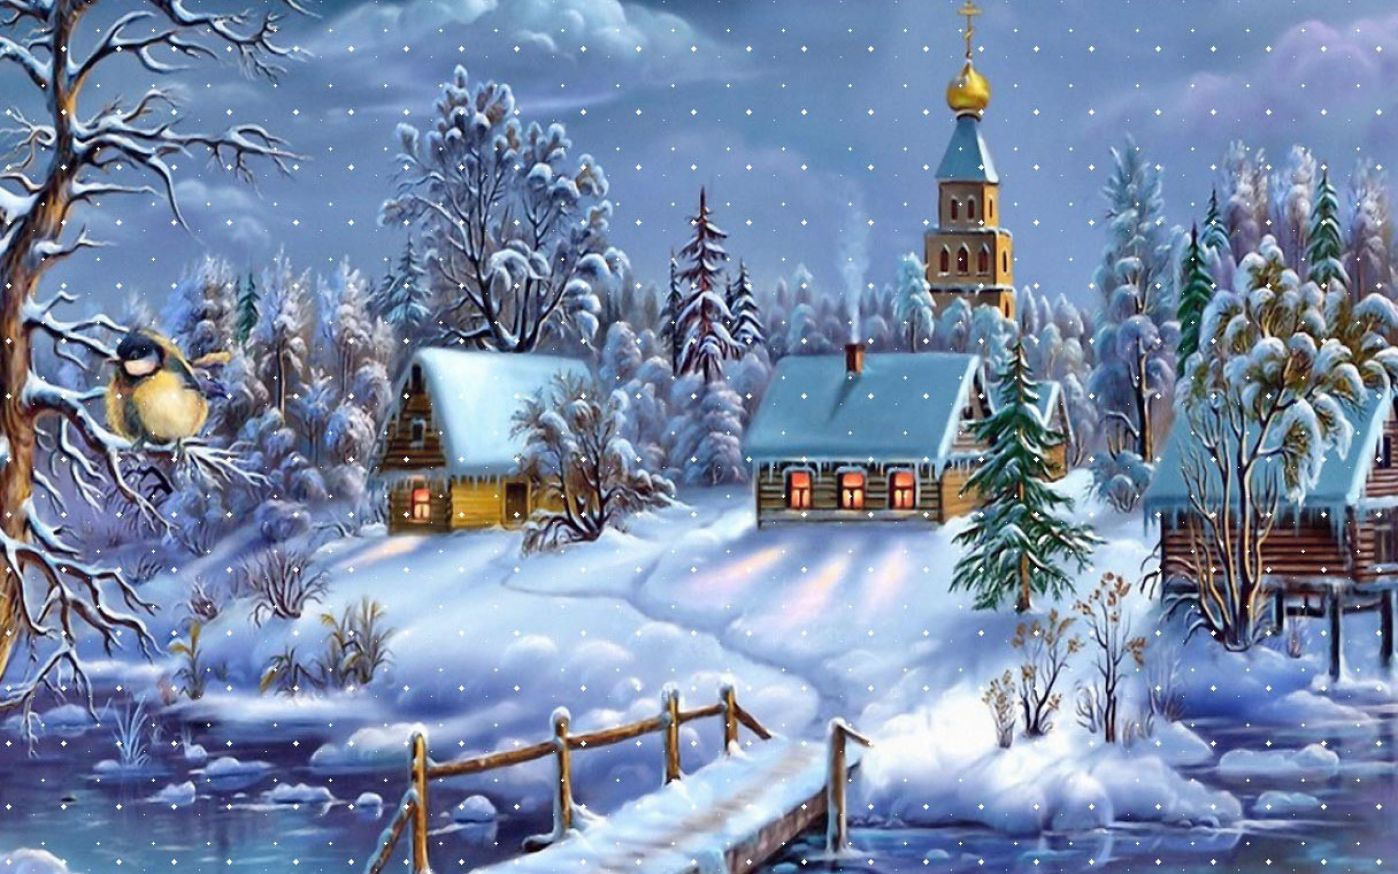 Animated Christmas Wallpaper - WallpaperSafari